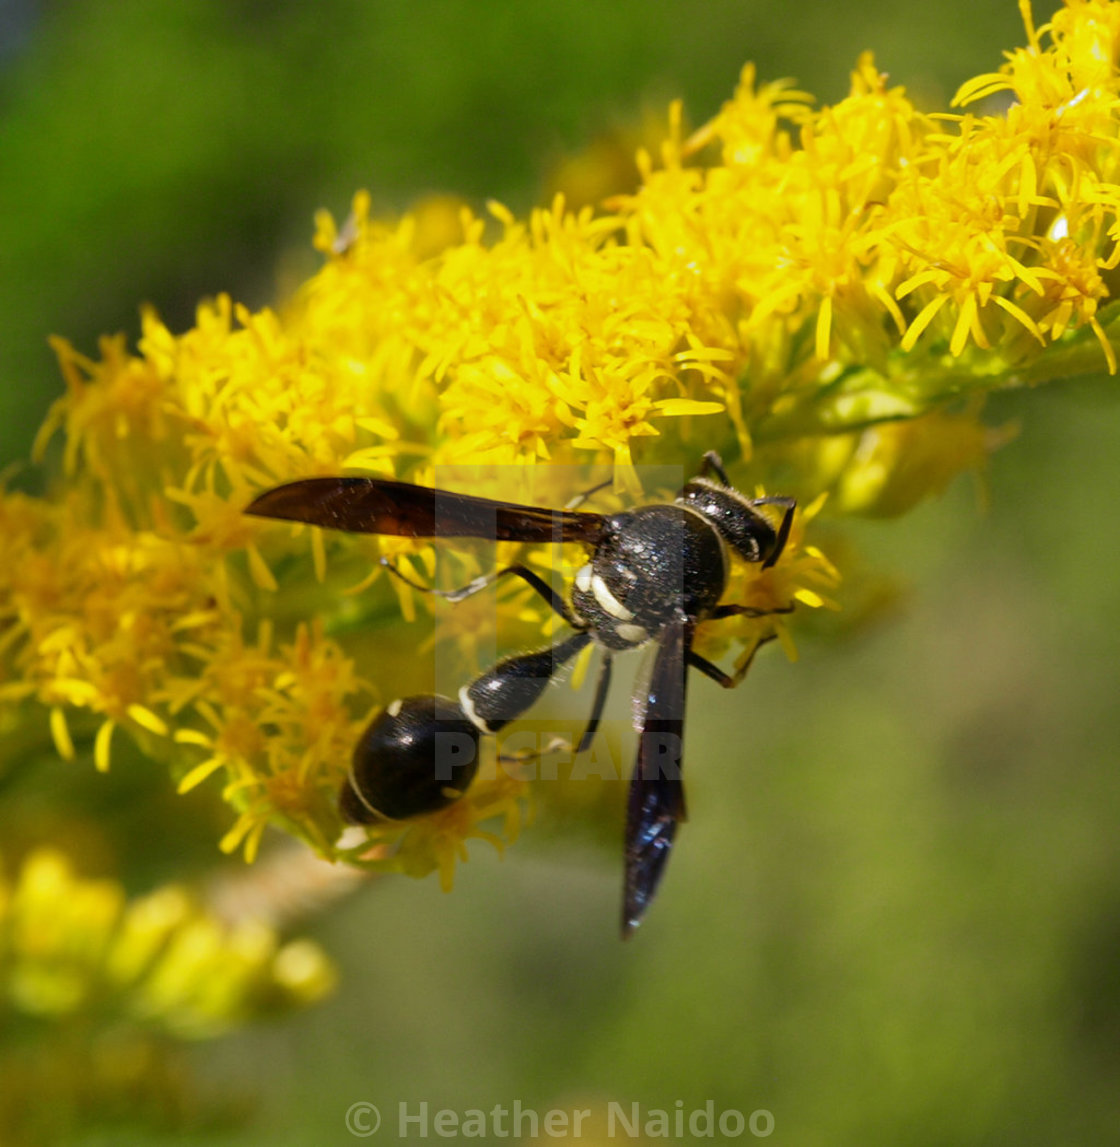 Tiny Wasp On Tiny Yellow Flowers License For 124 On Picfair